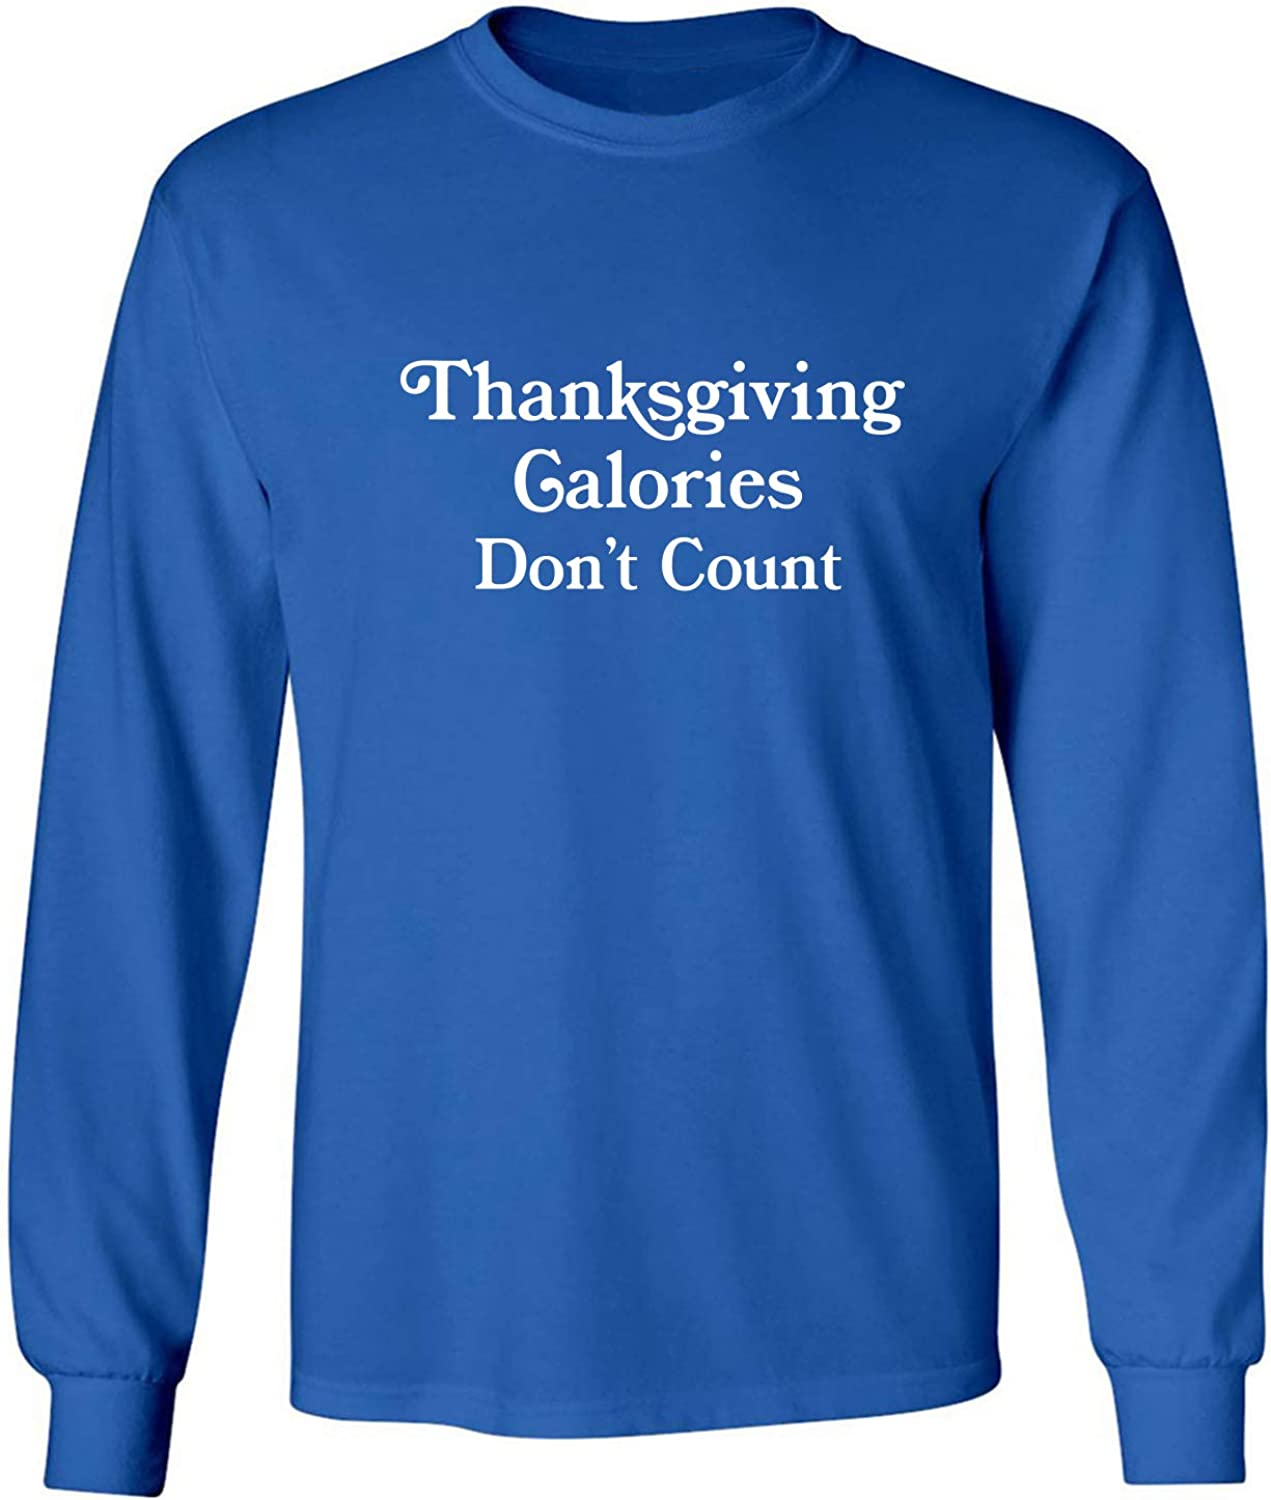 Thanksgiving Calories Don't Count Adult Long Sleeve T-Shirt in Royal - XXXX-Large